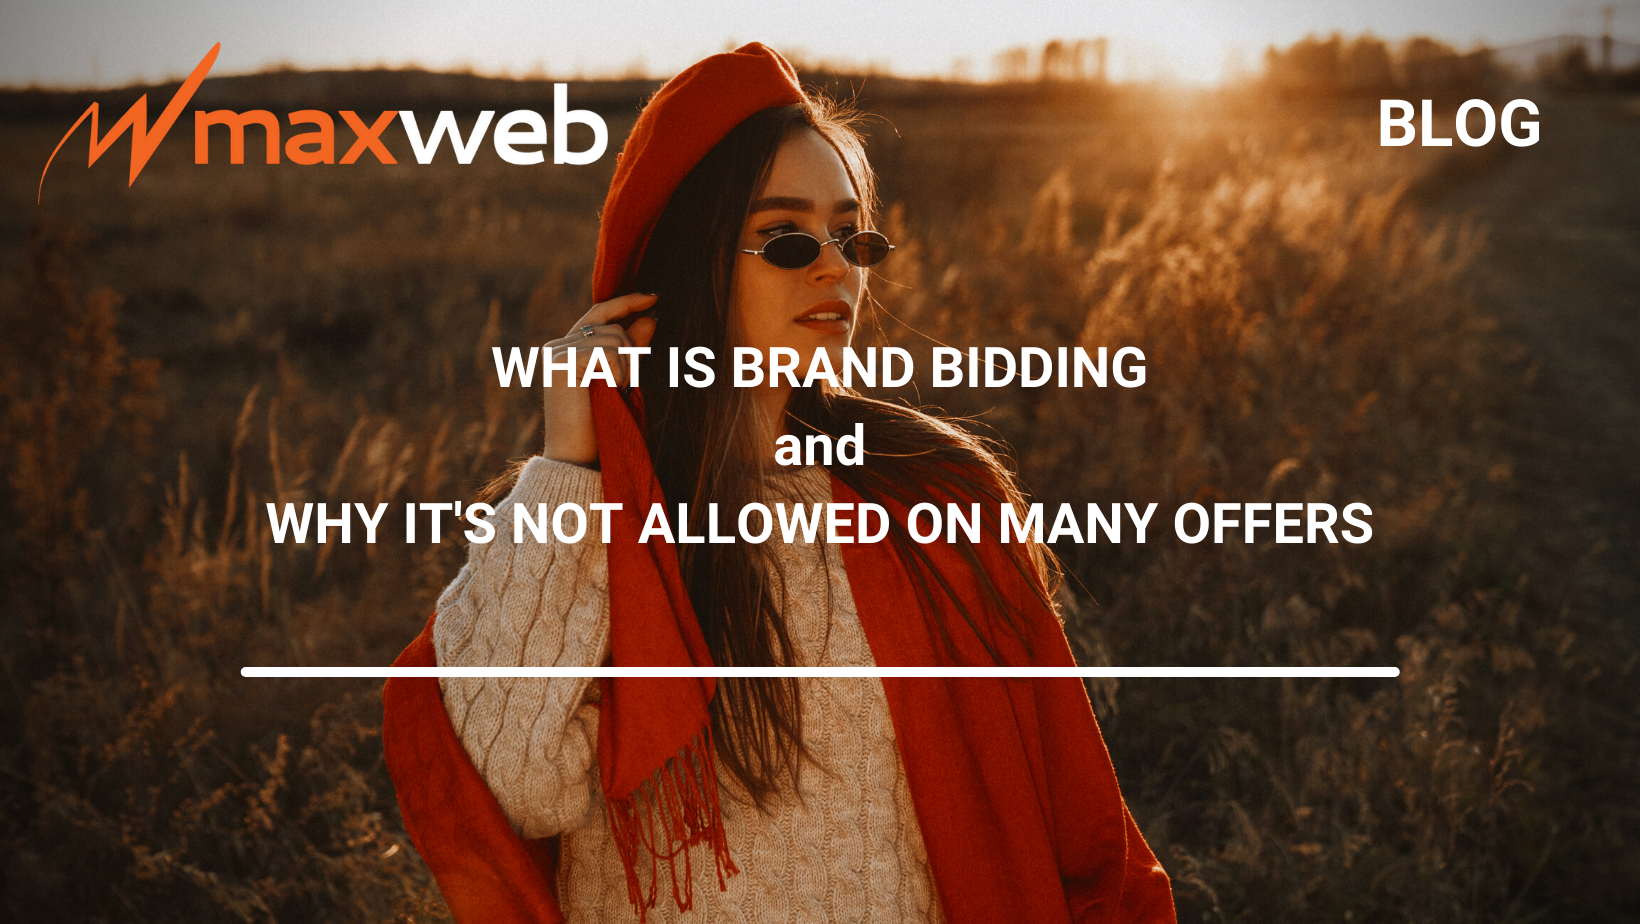 What Is Brand Bidding and Why It's Mostly Not Allowed